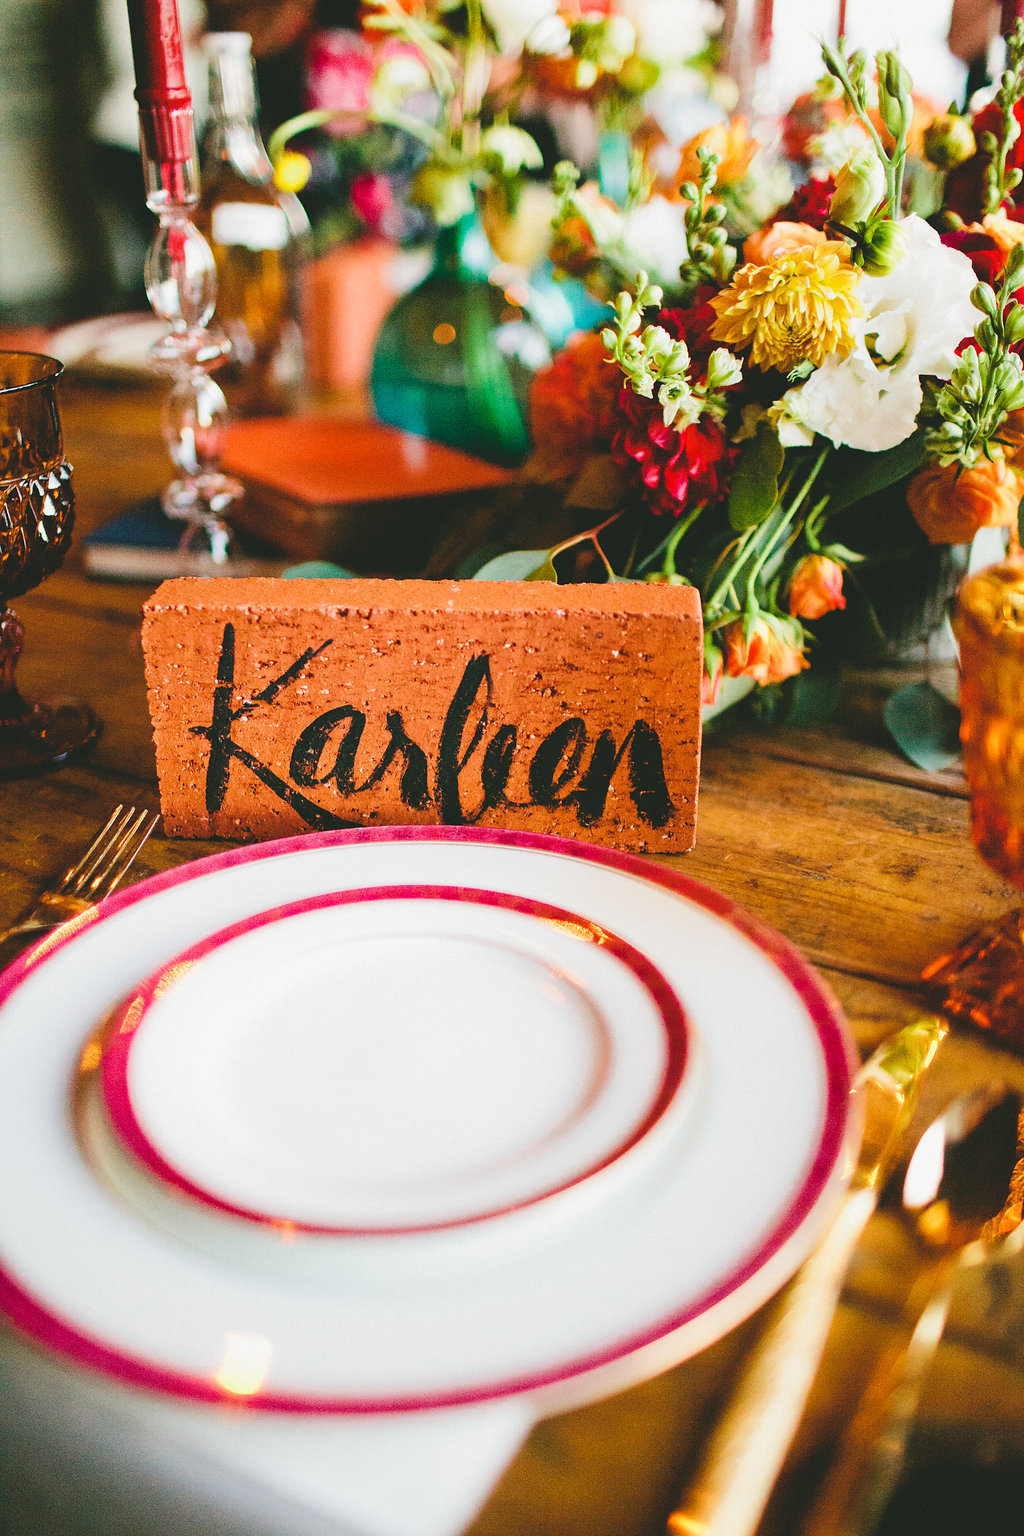 modern plate table setting with hand painted brick name card at casual dinner party with Local Table